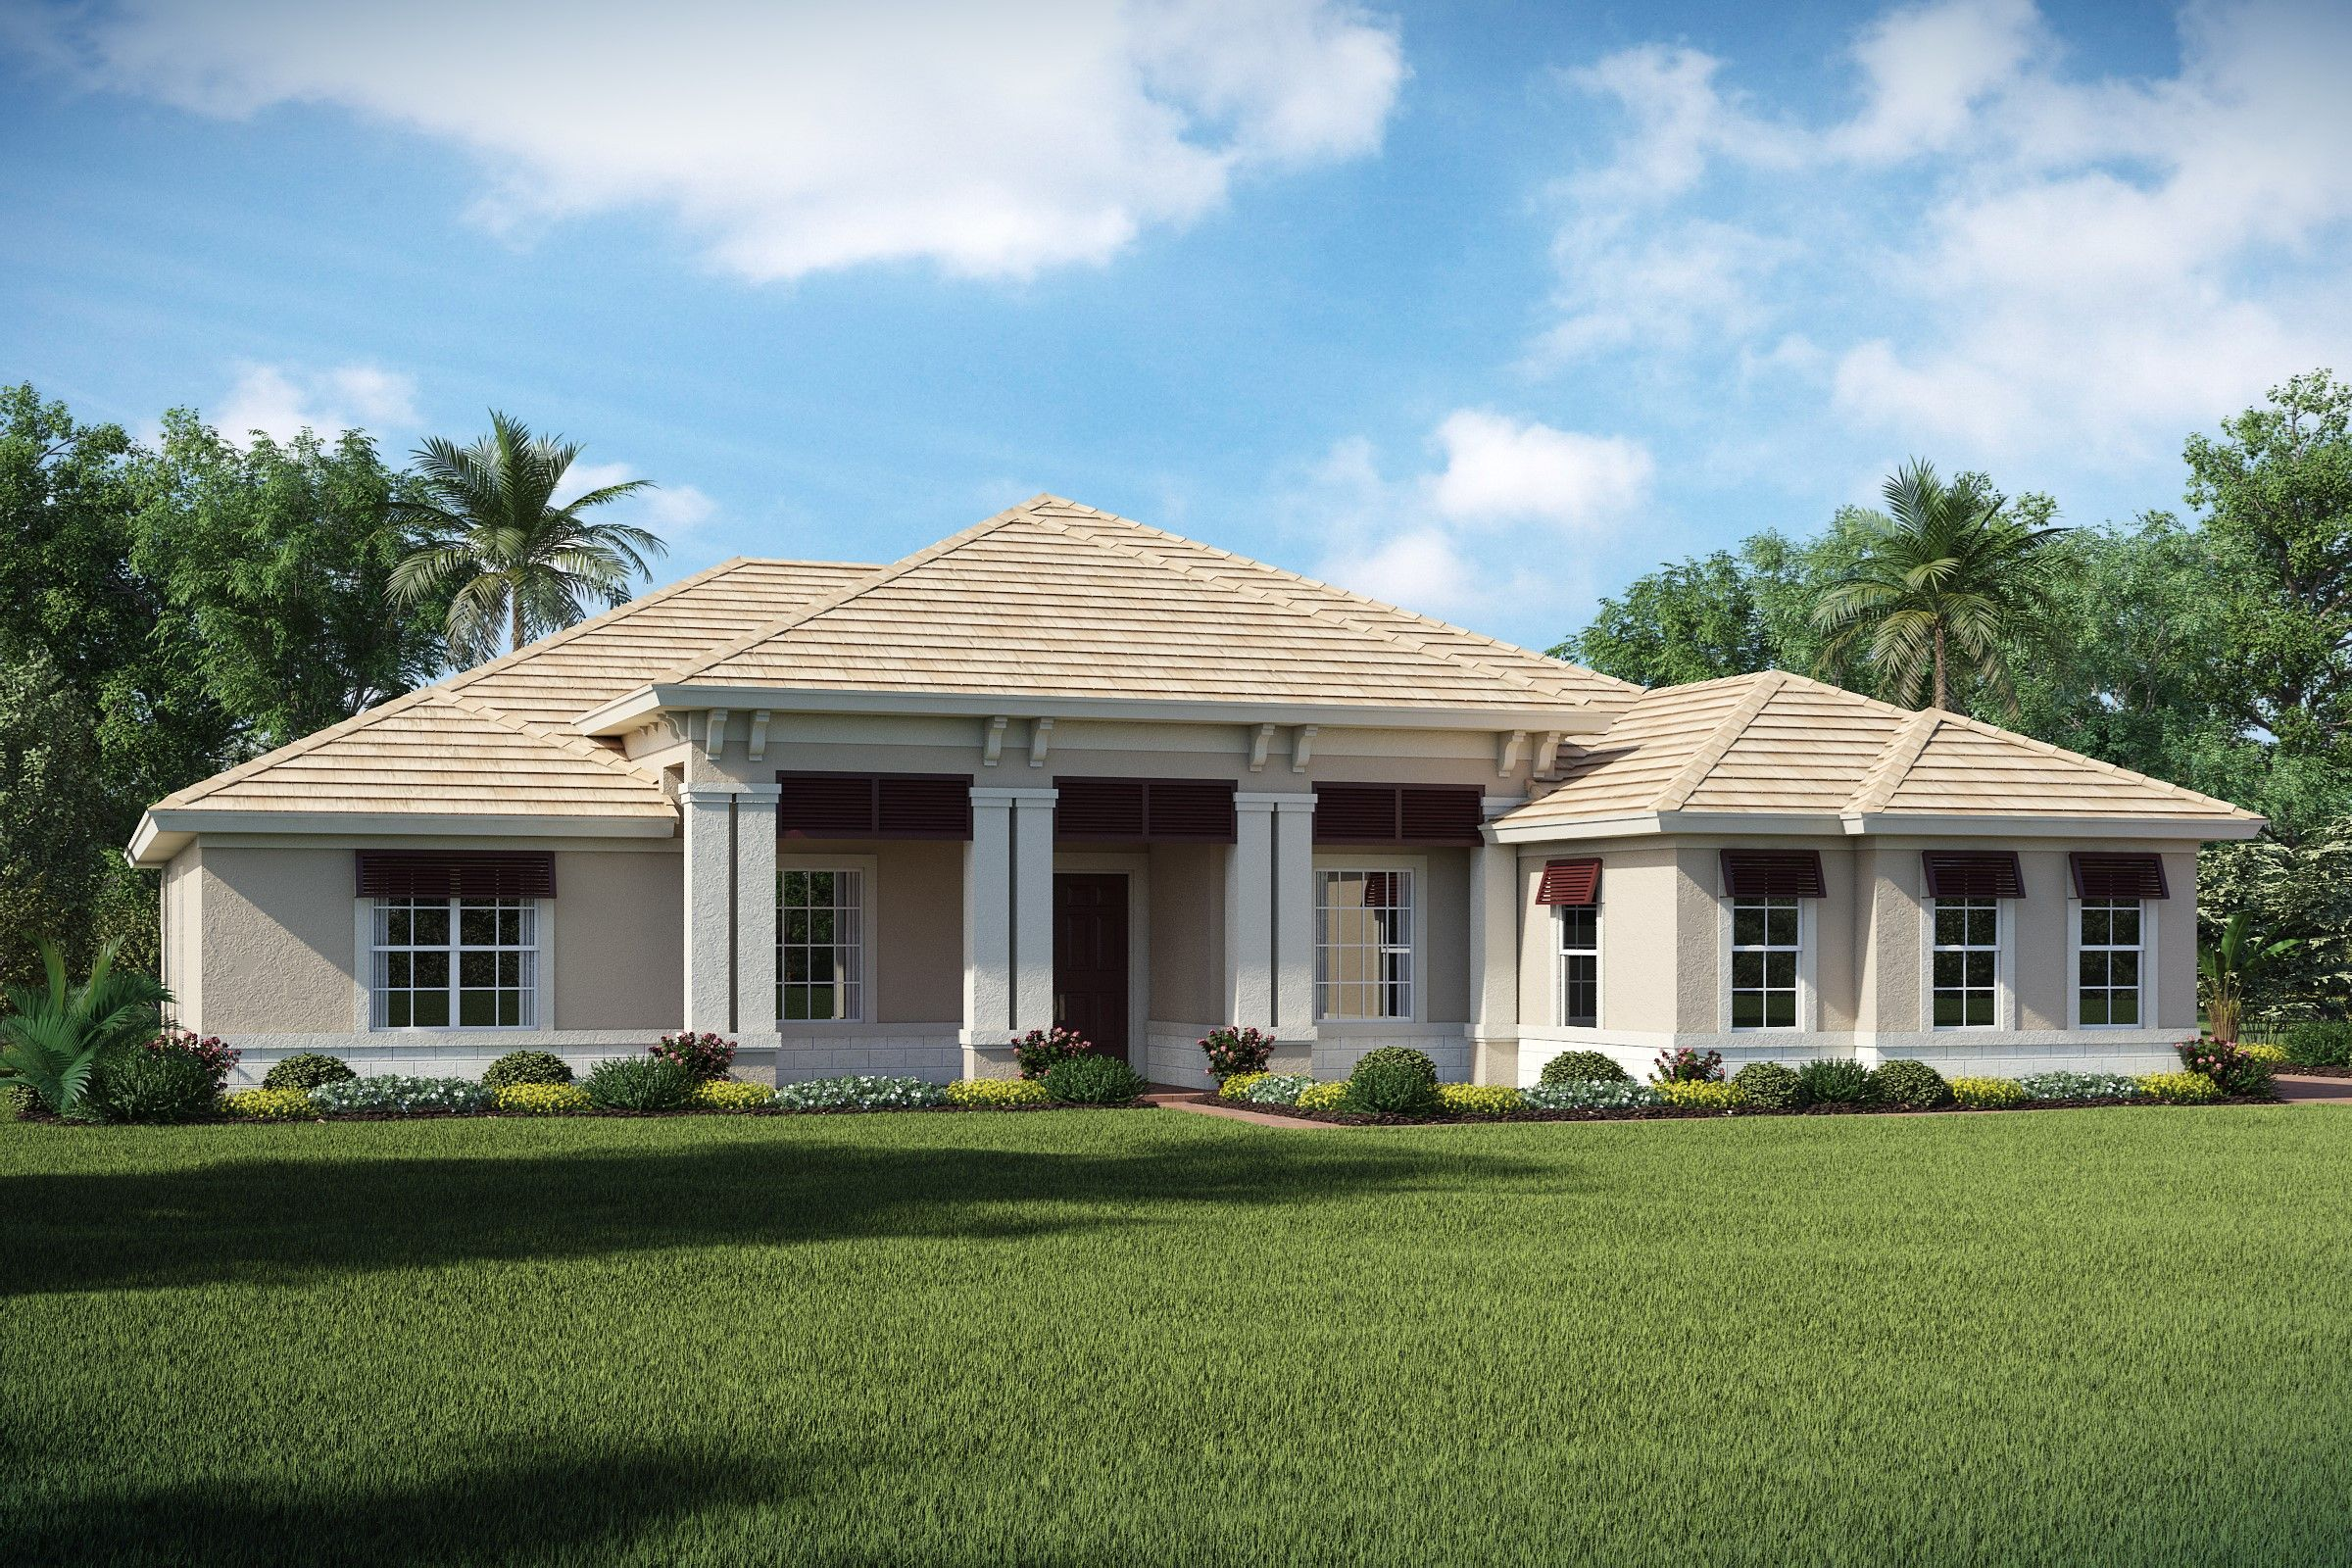 Single Family for Sale at Redtail - Saffire 32049 Red Tail Blvd Sorrento, Florida 32776 United States